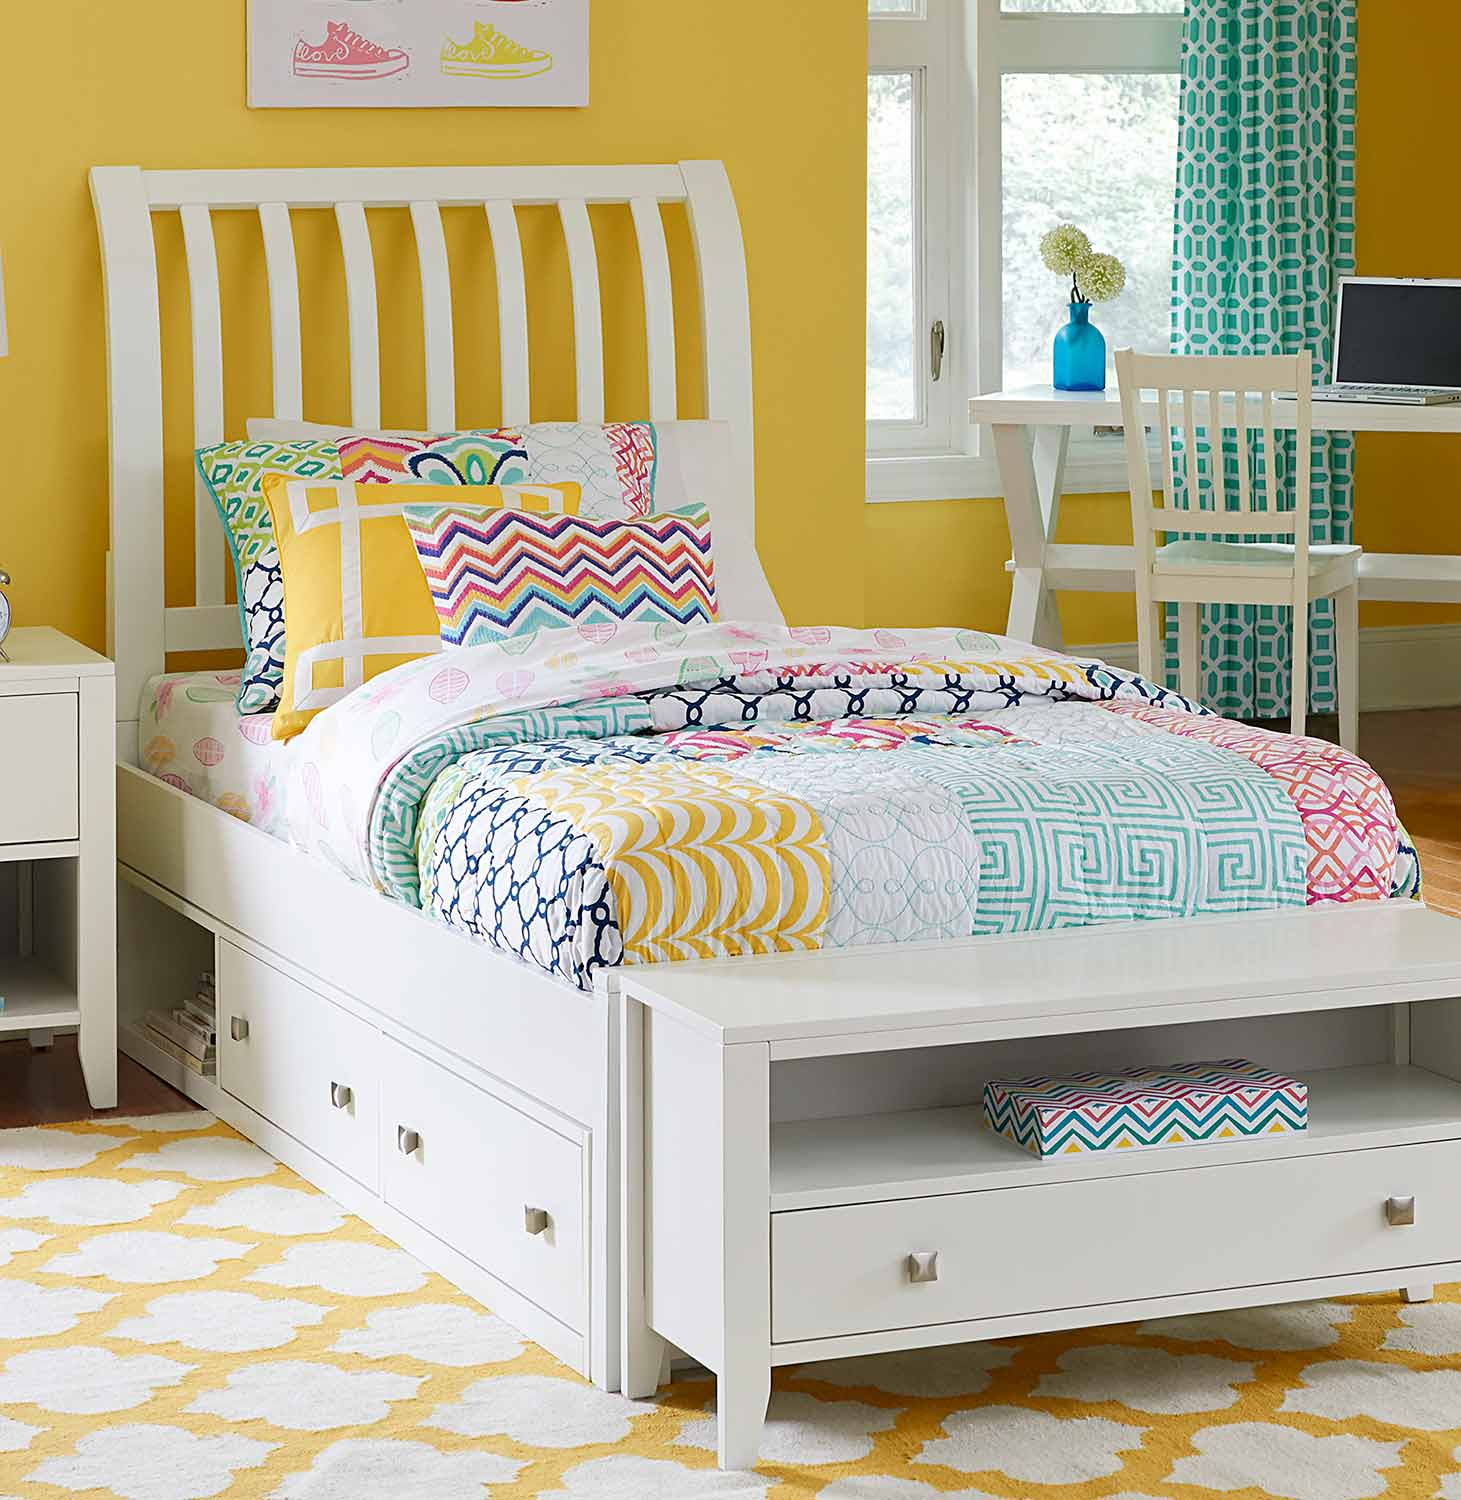 NE Kids Pulse Rake Sleigh Bed With Storage - White